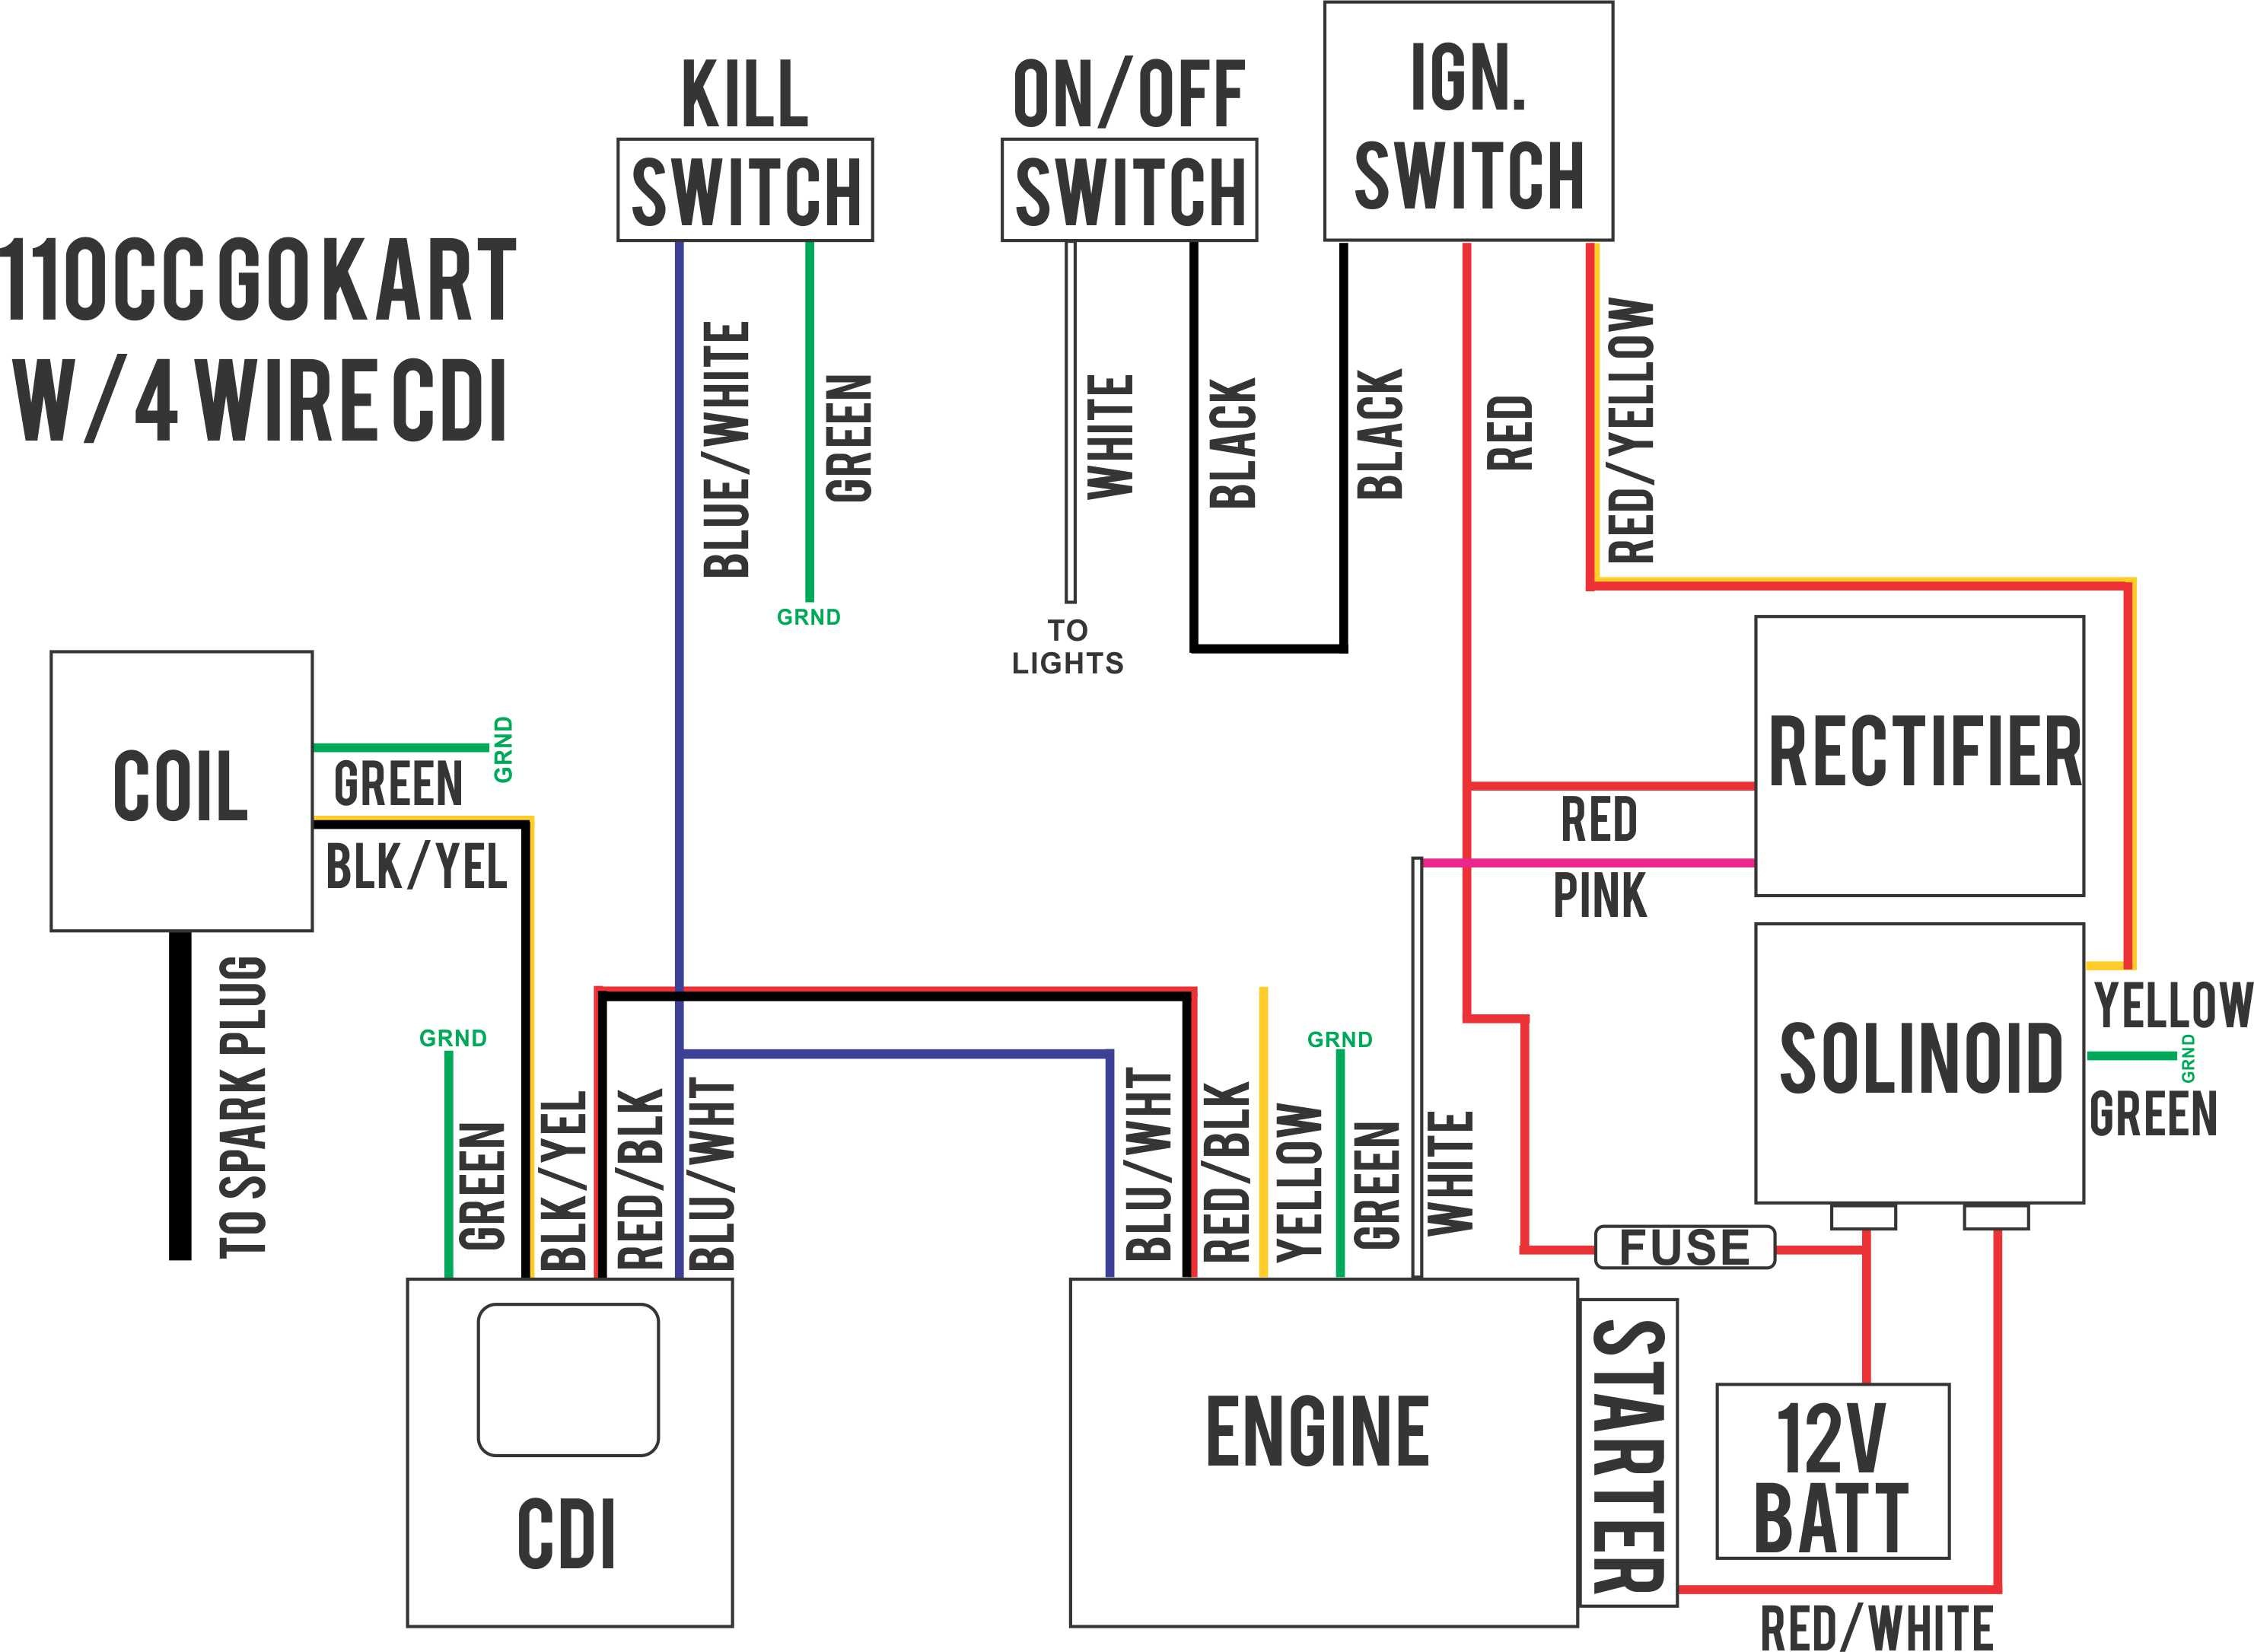 Usb Schematic Diagram | Wiring Diagram on yamoto 110 atv wire diagram, 110 plug diagram, bay window diagram, bathroom diagram,